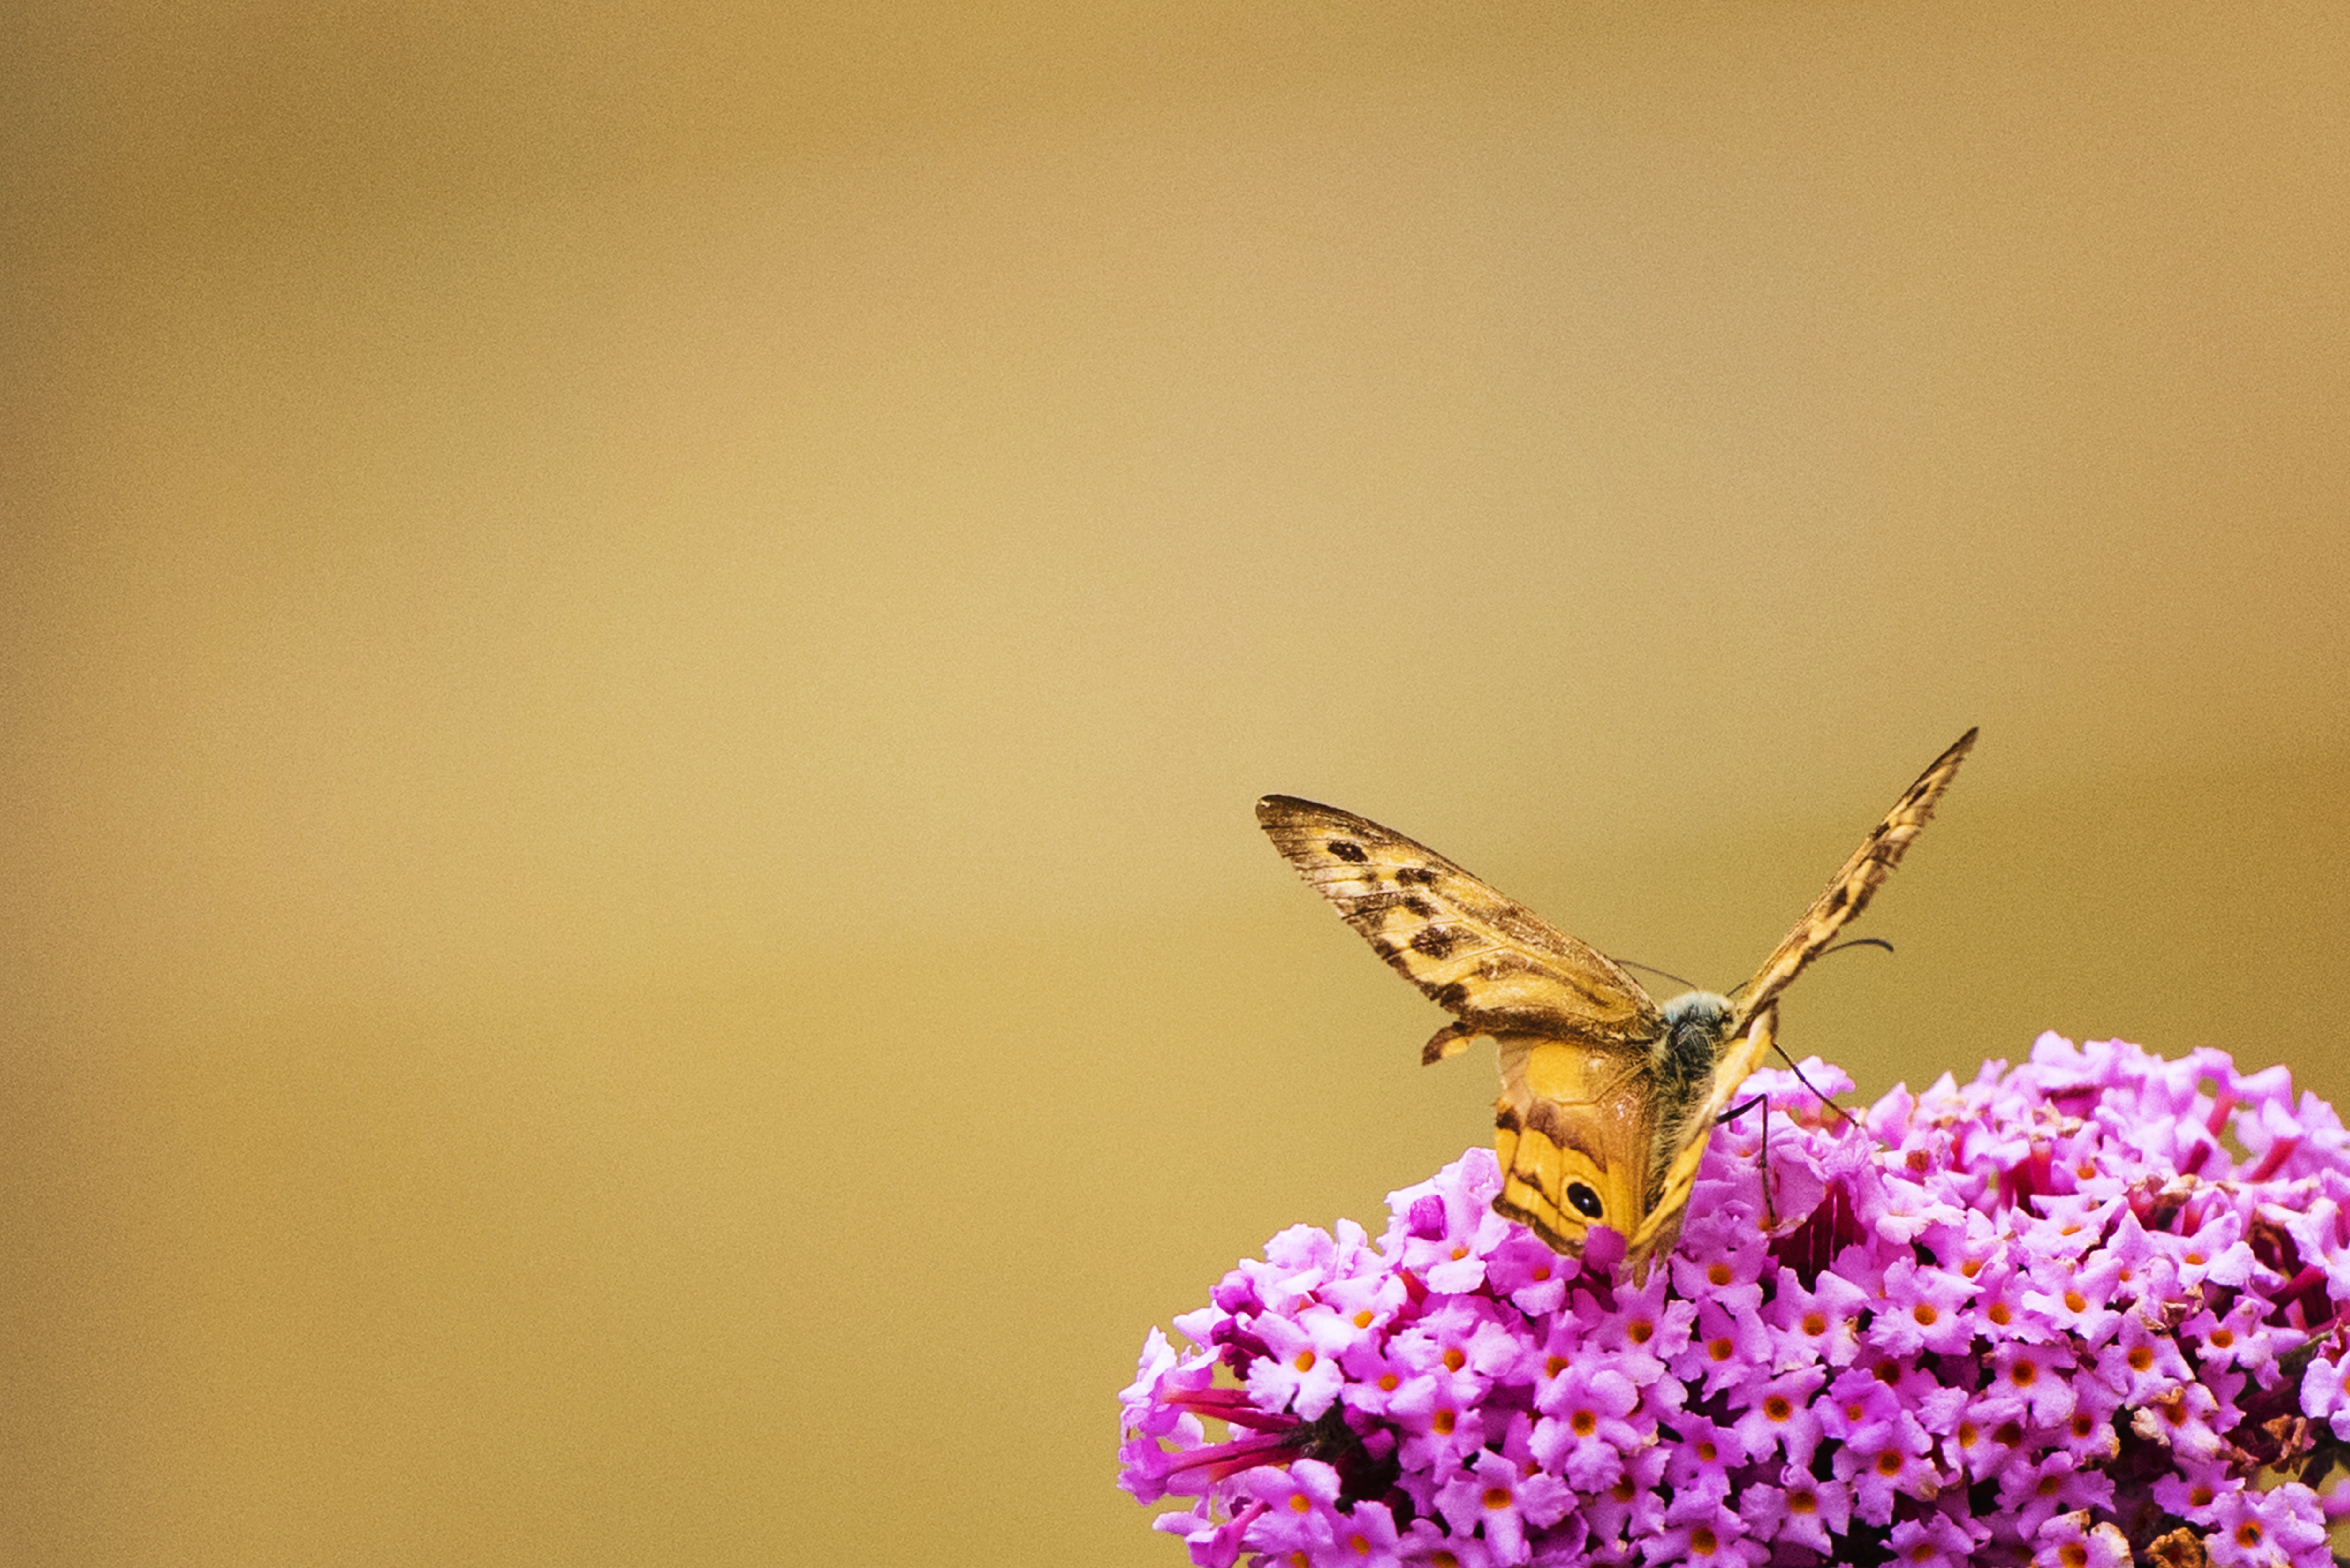 Brown Monarch Butterfly Perch on Pink Clusted Flwoers